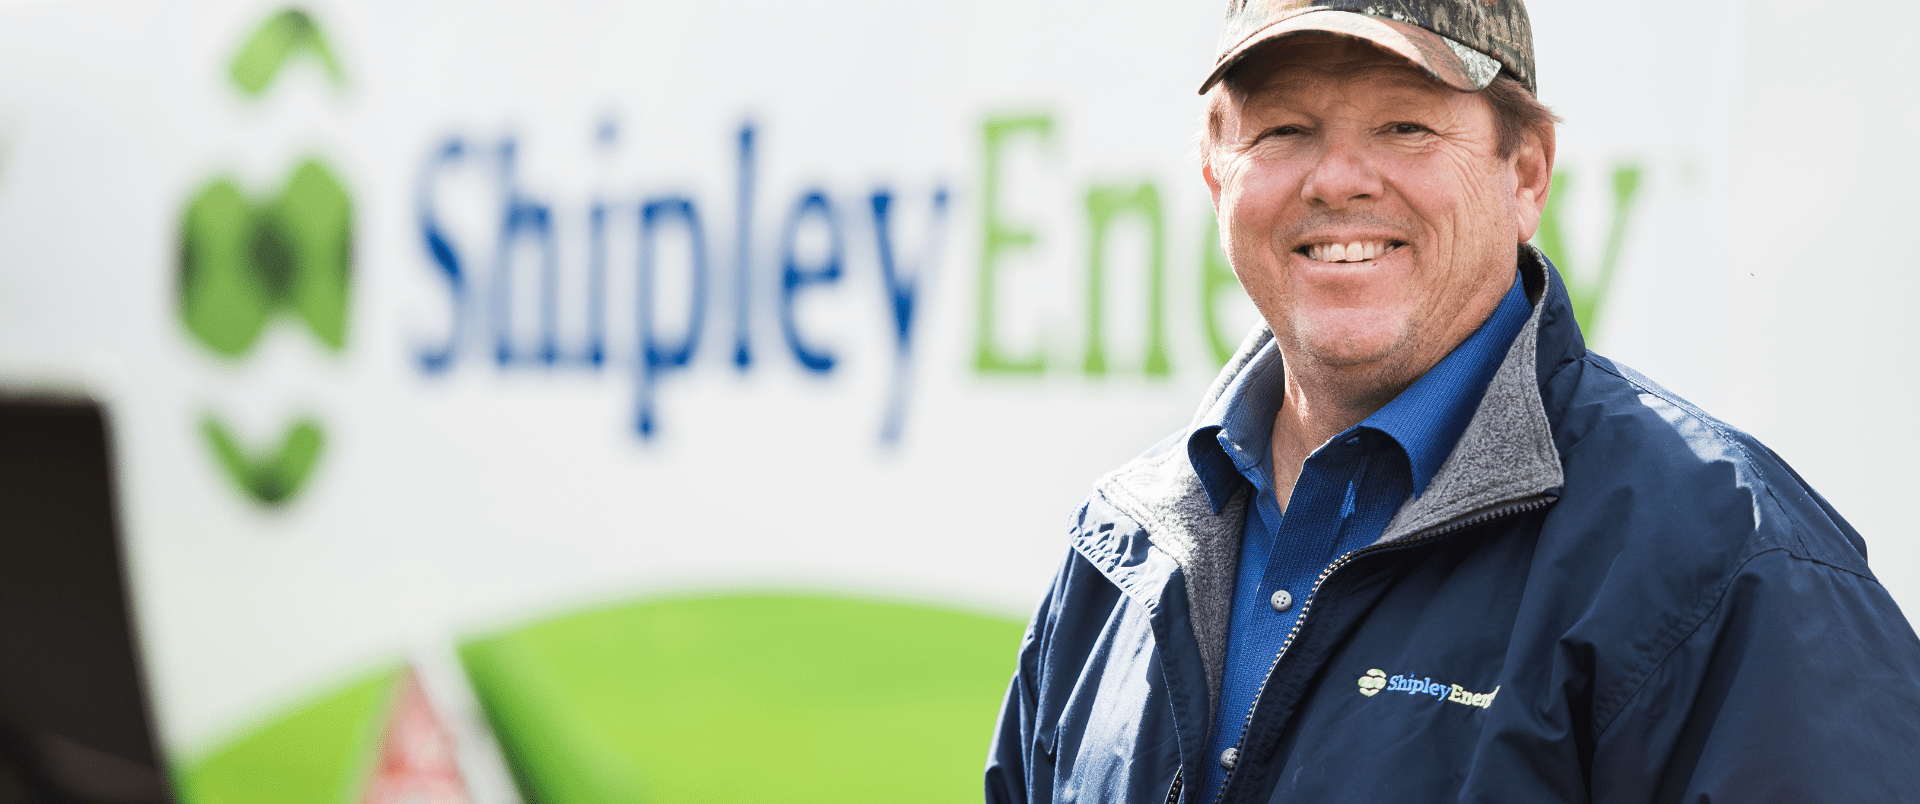 Welcome to Shipley Energy